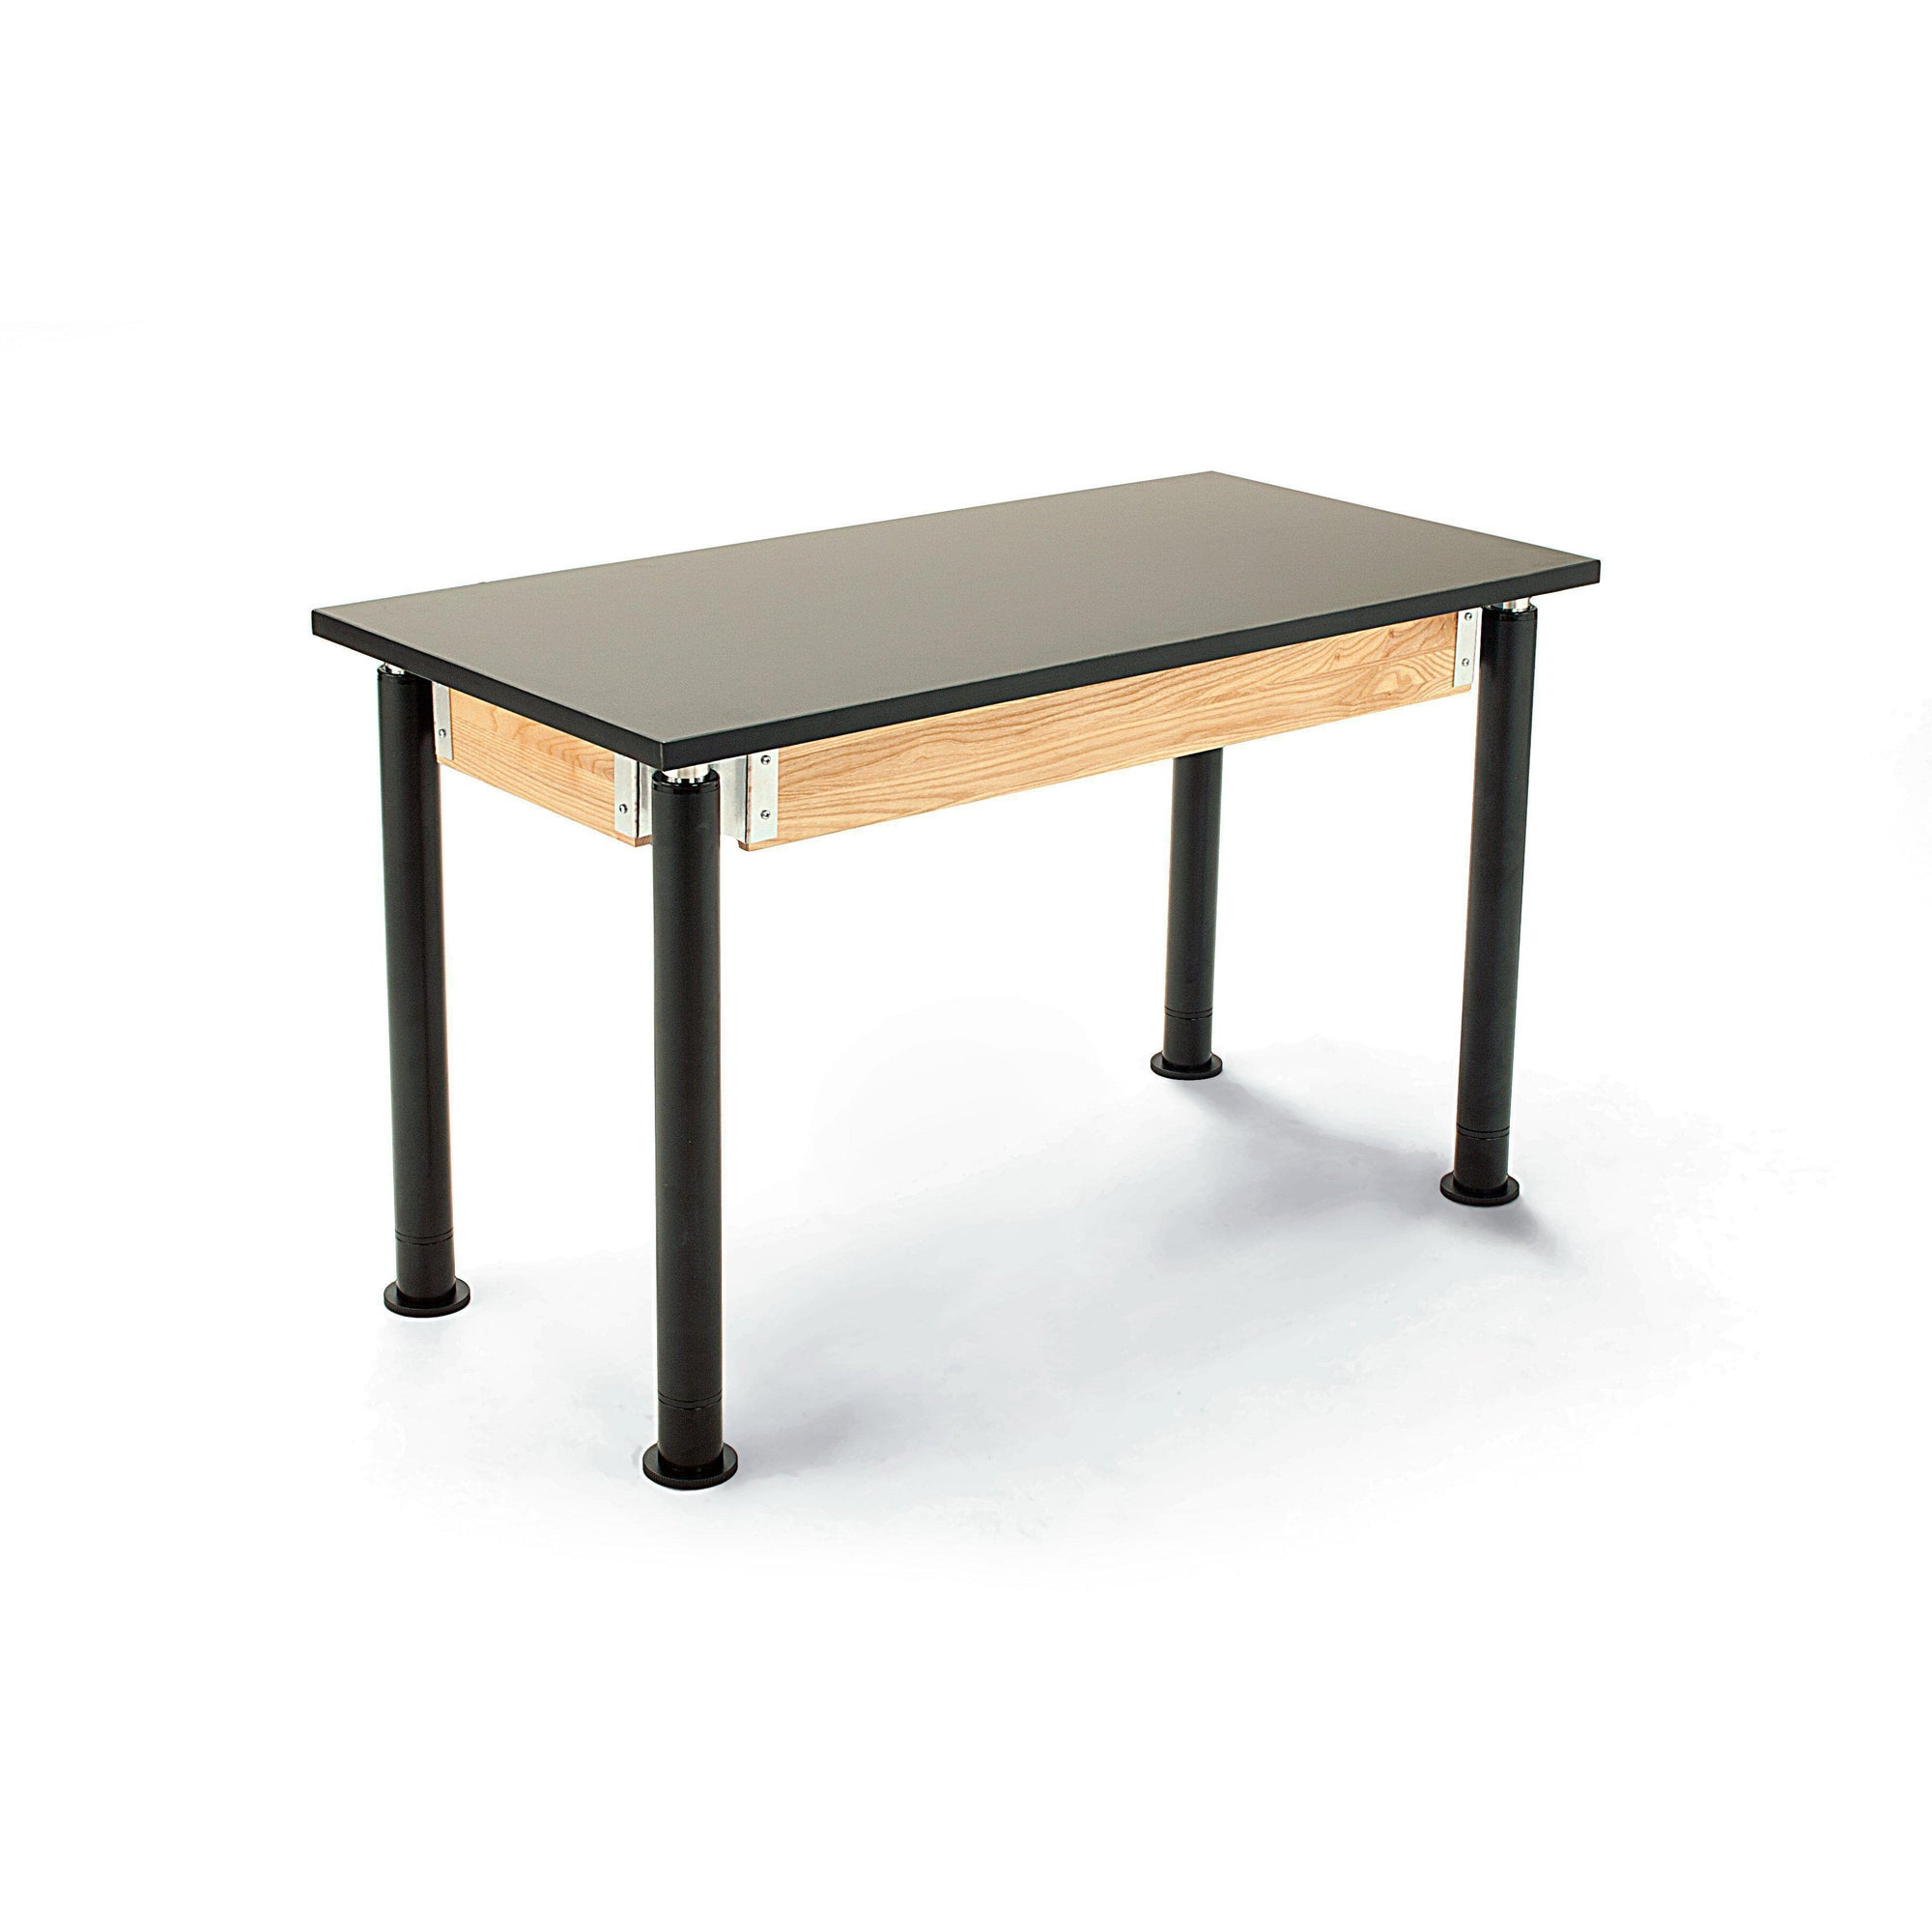 NPS Superior Science Lab Tables with Phenolic Top, Contemporary Styled Height Adjustable Legs